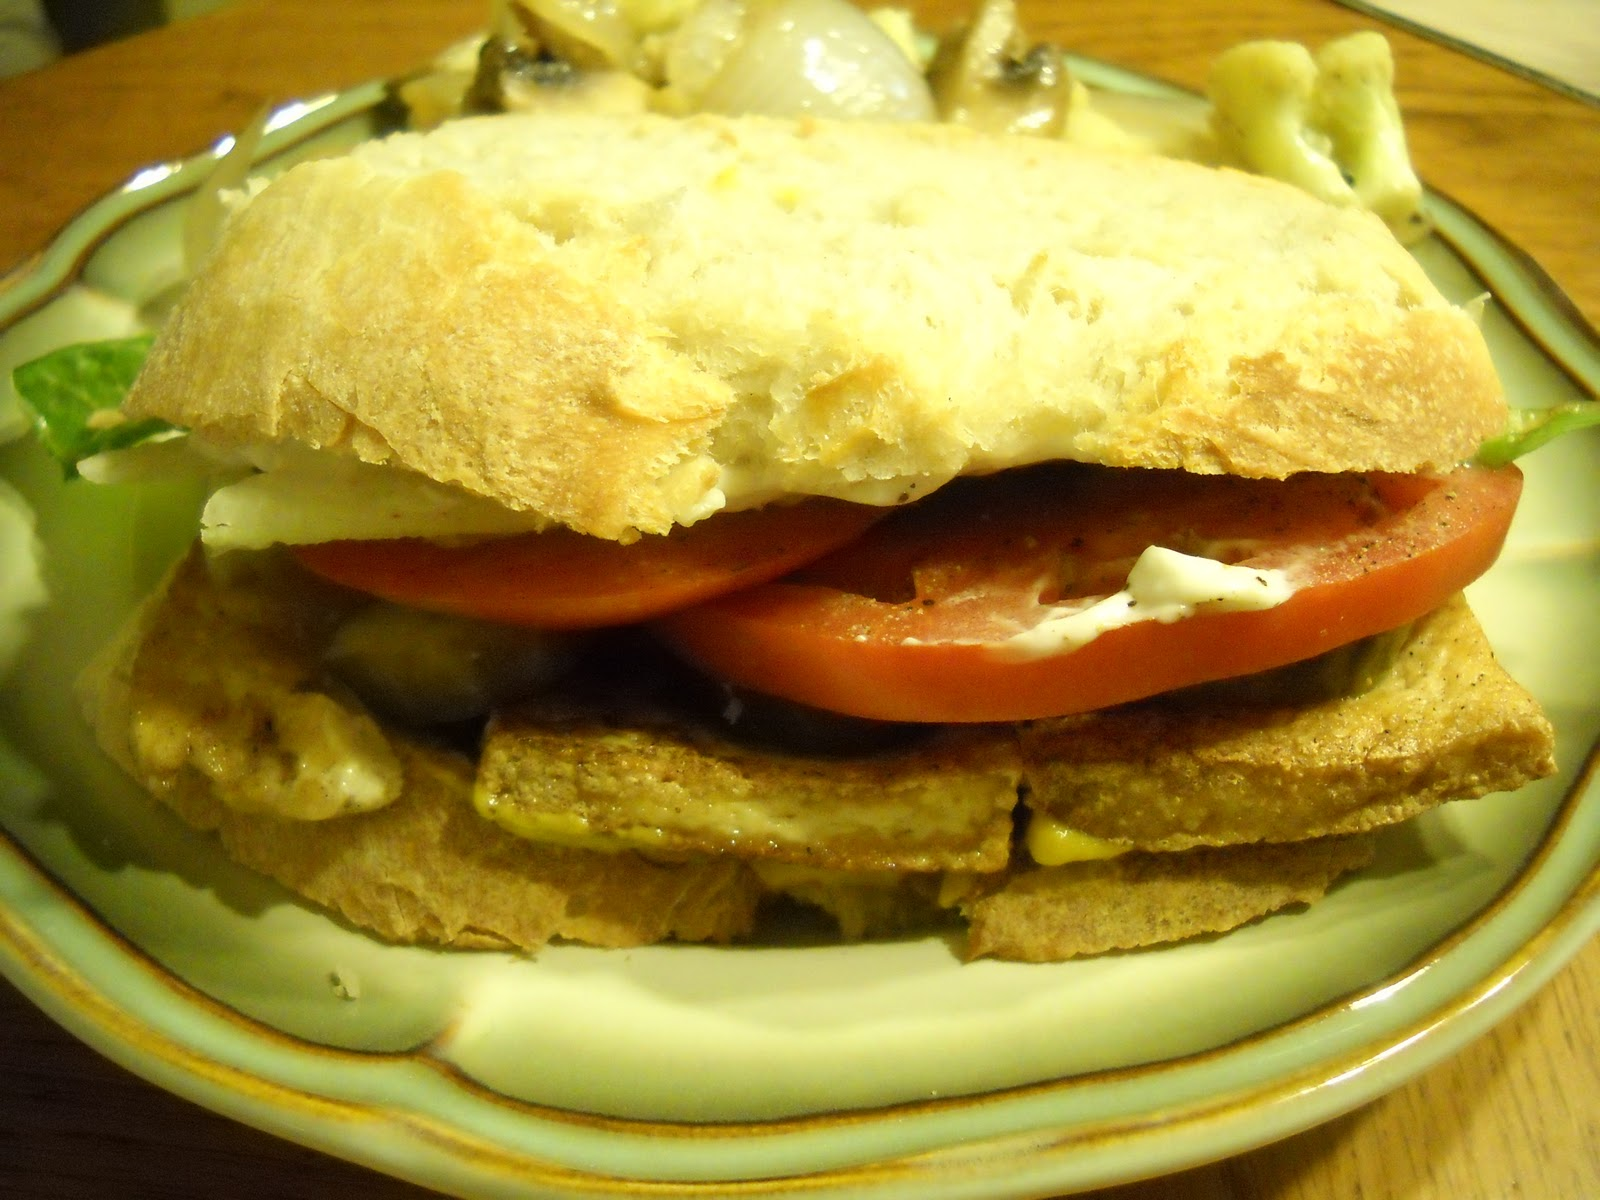 Fried Tofu Sandwiches